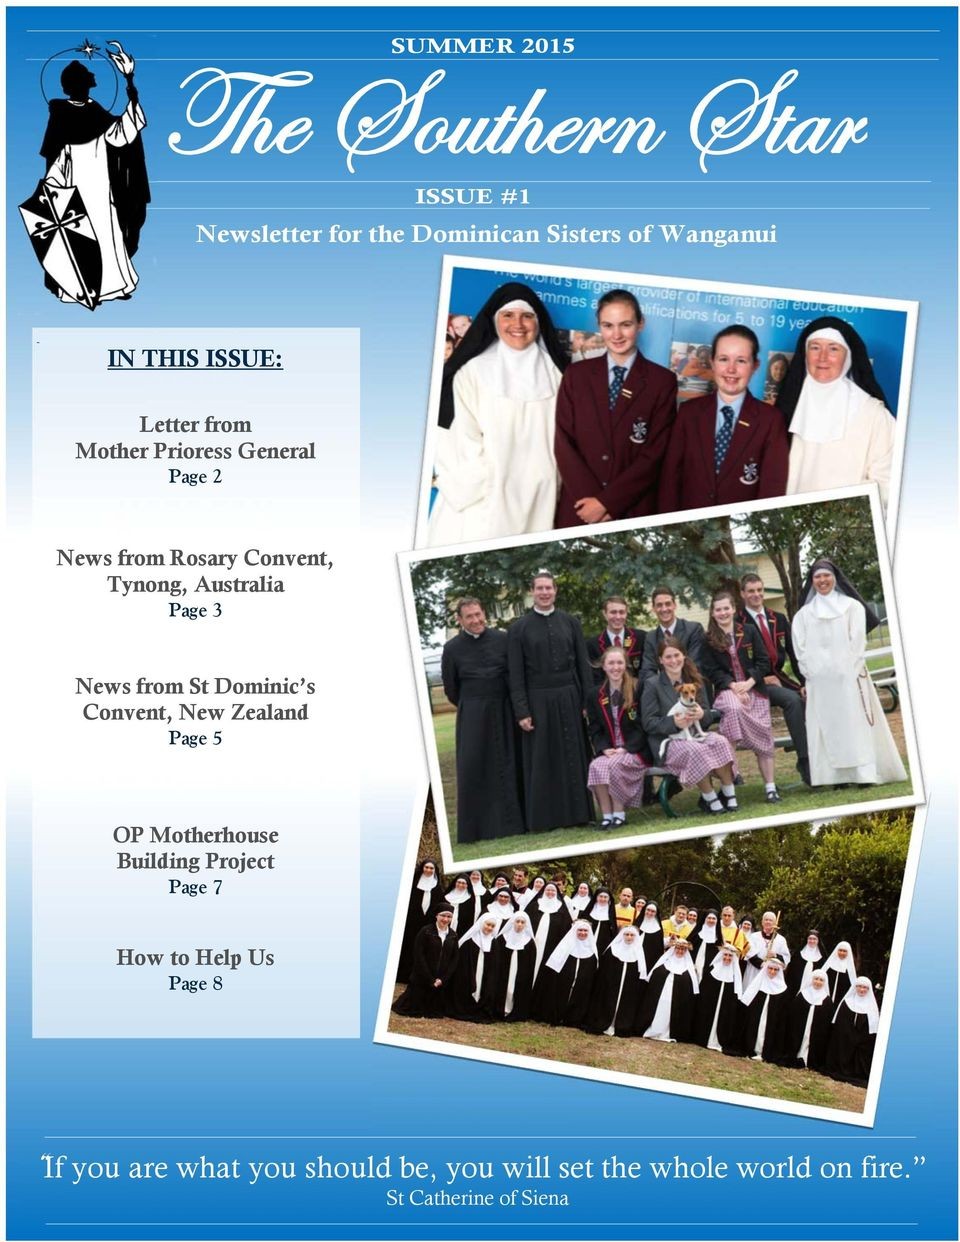 News from St Dominic s Convent, New Zealand Page 5.